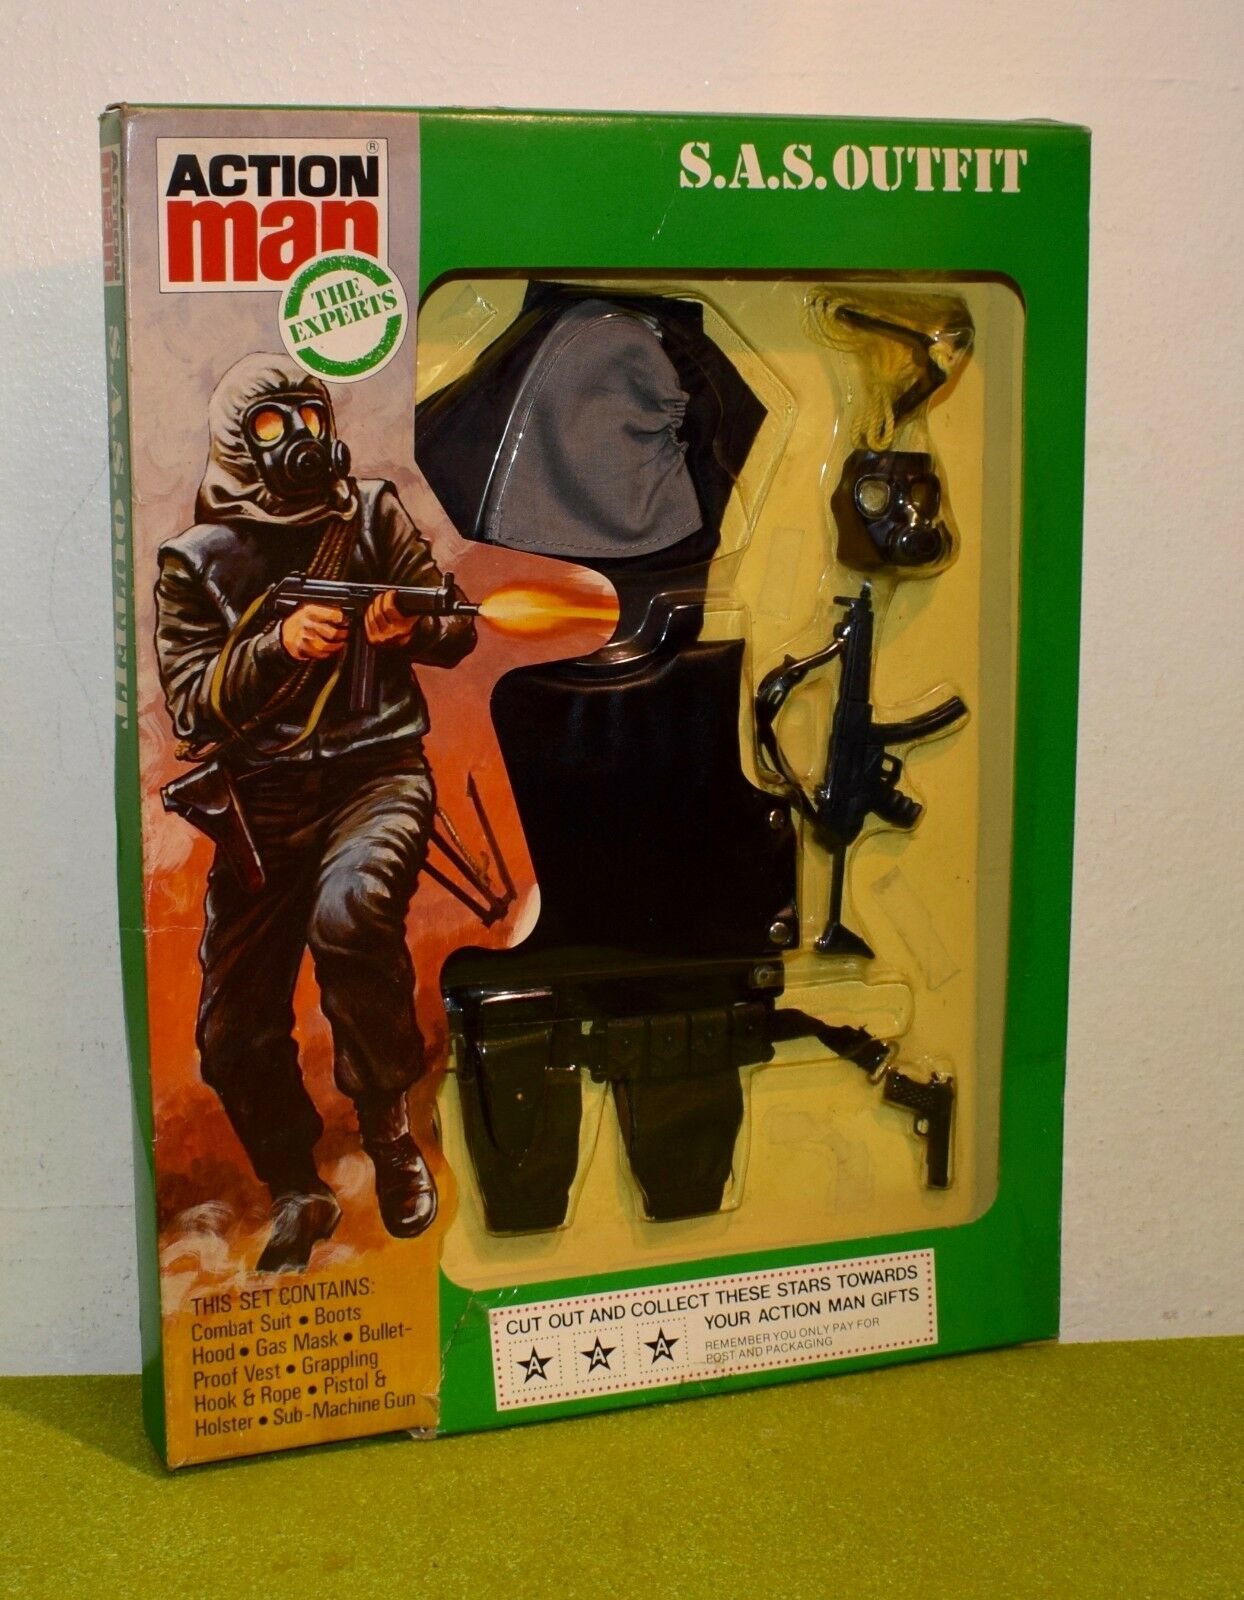 ORIGINAL VINTAGE ACTION MAN CARDED THE EXPERTS SAS OUTFIT